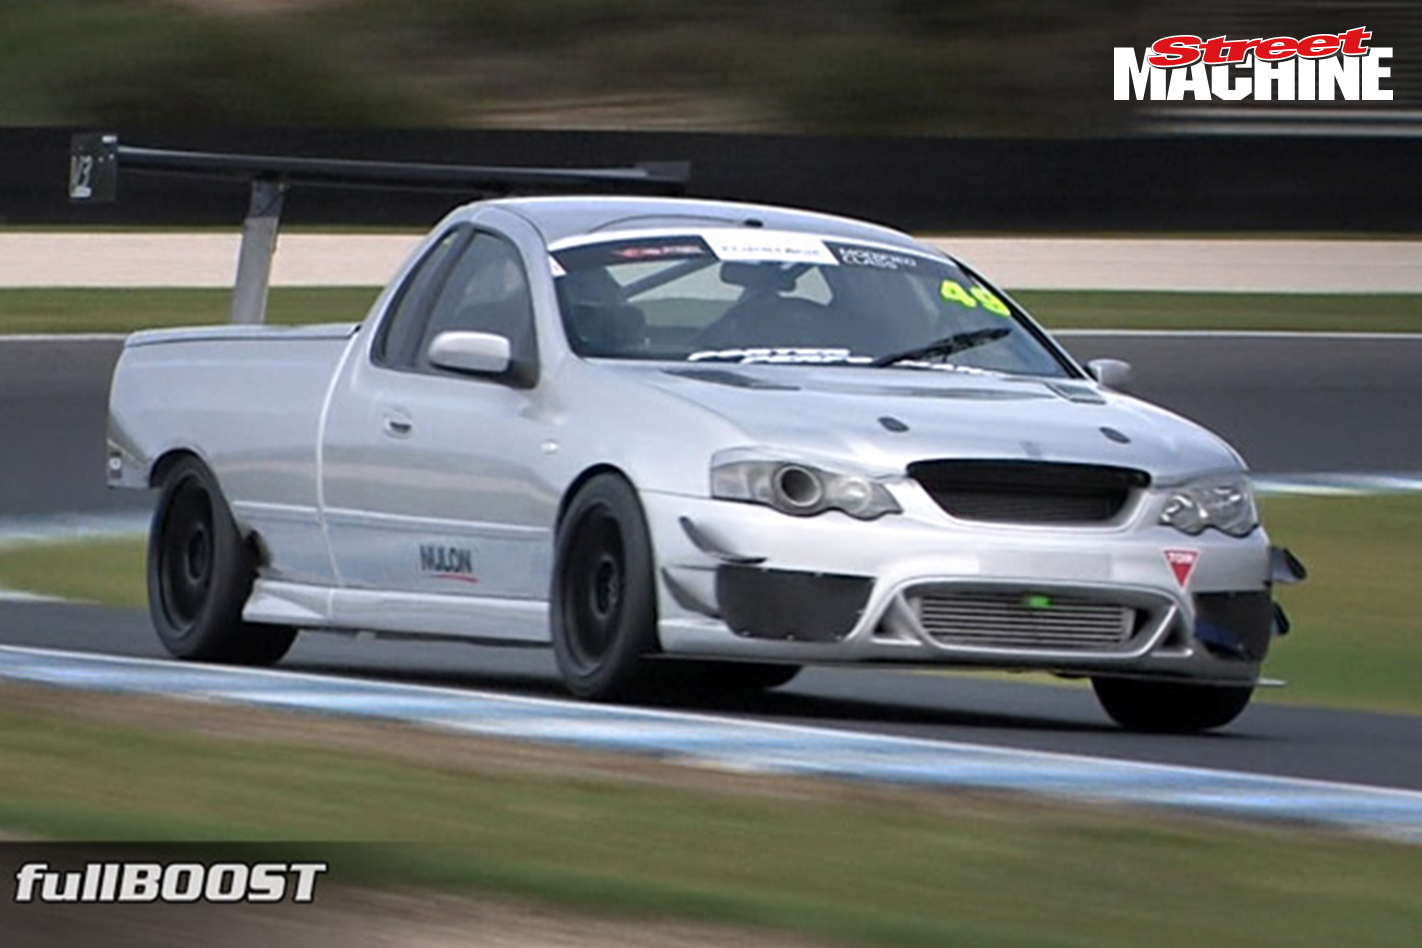 Ford XR6 Turbo Falcon ute time attack car – Video